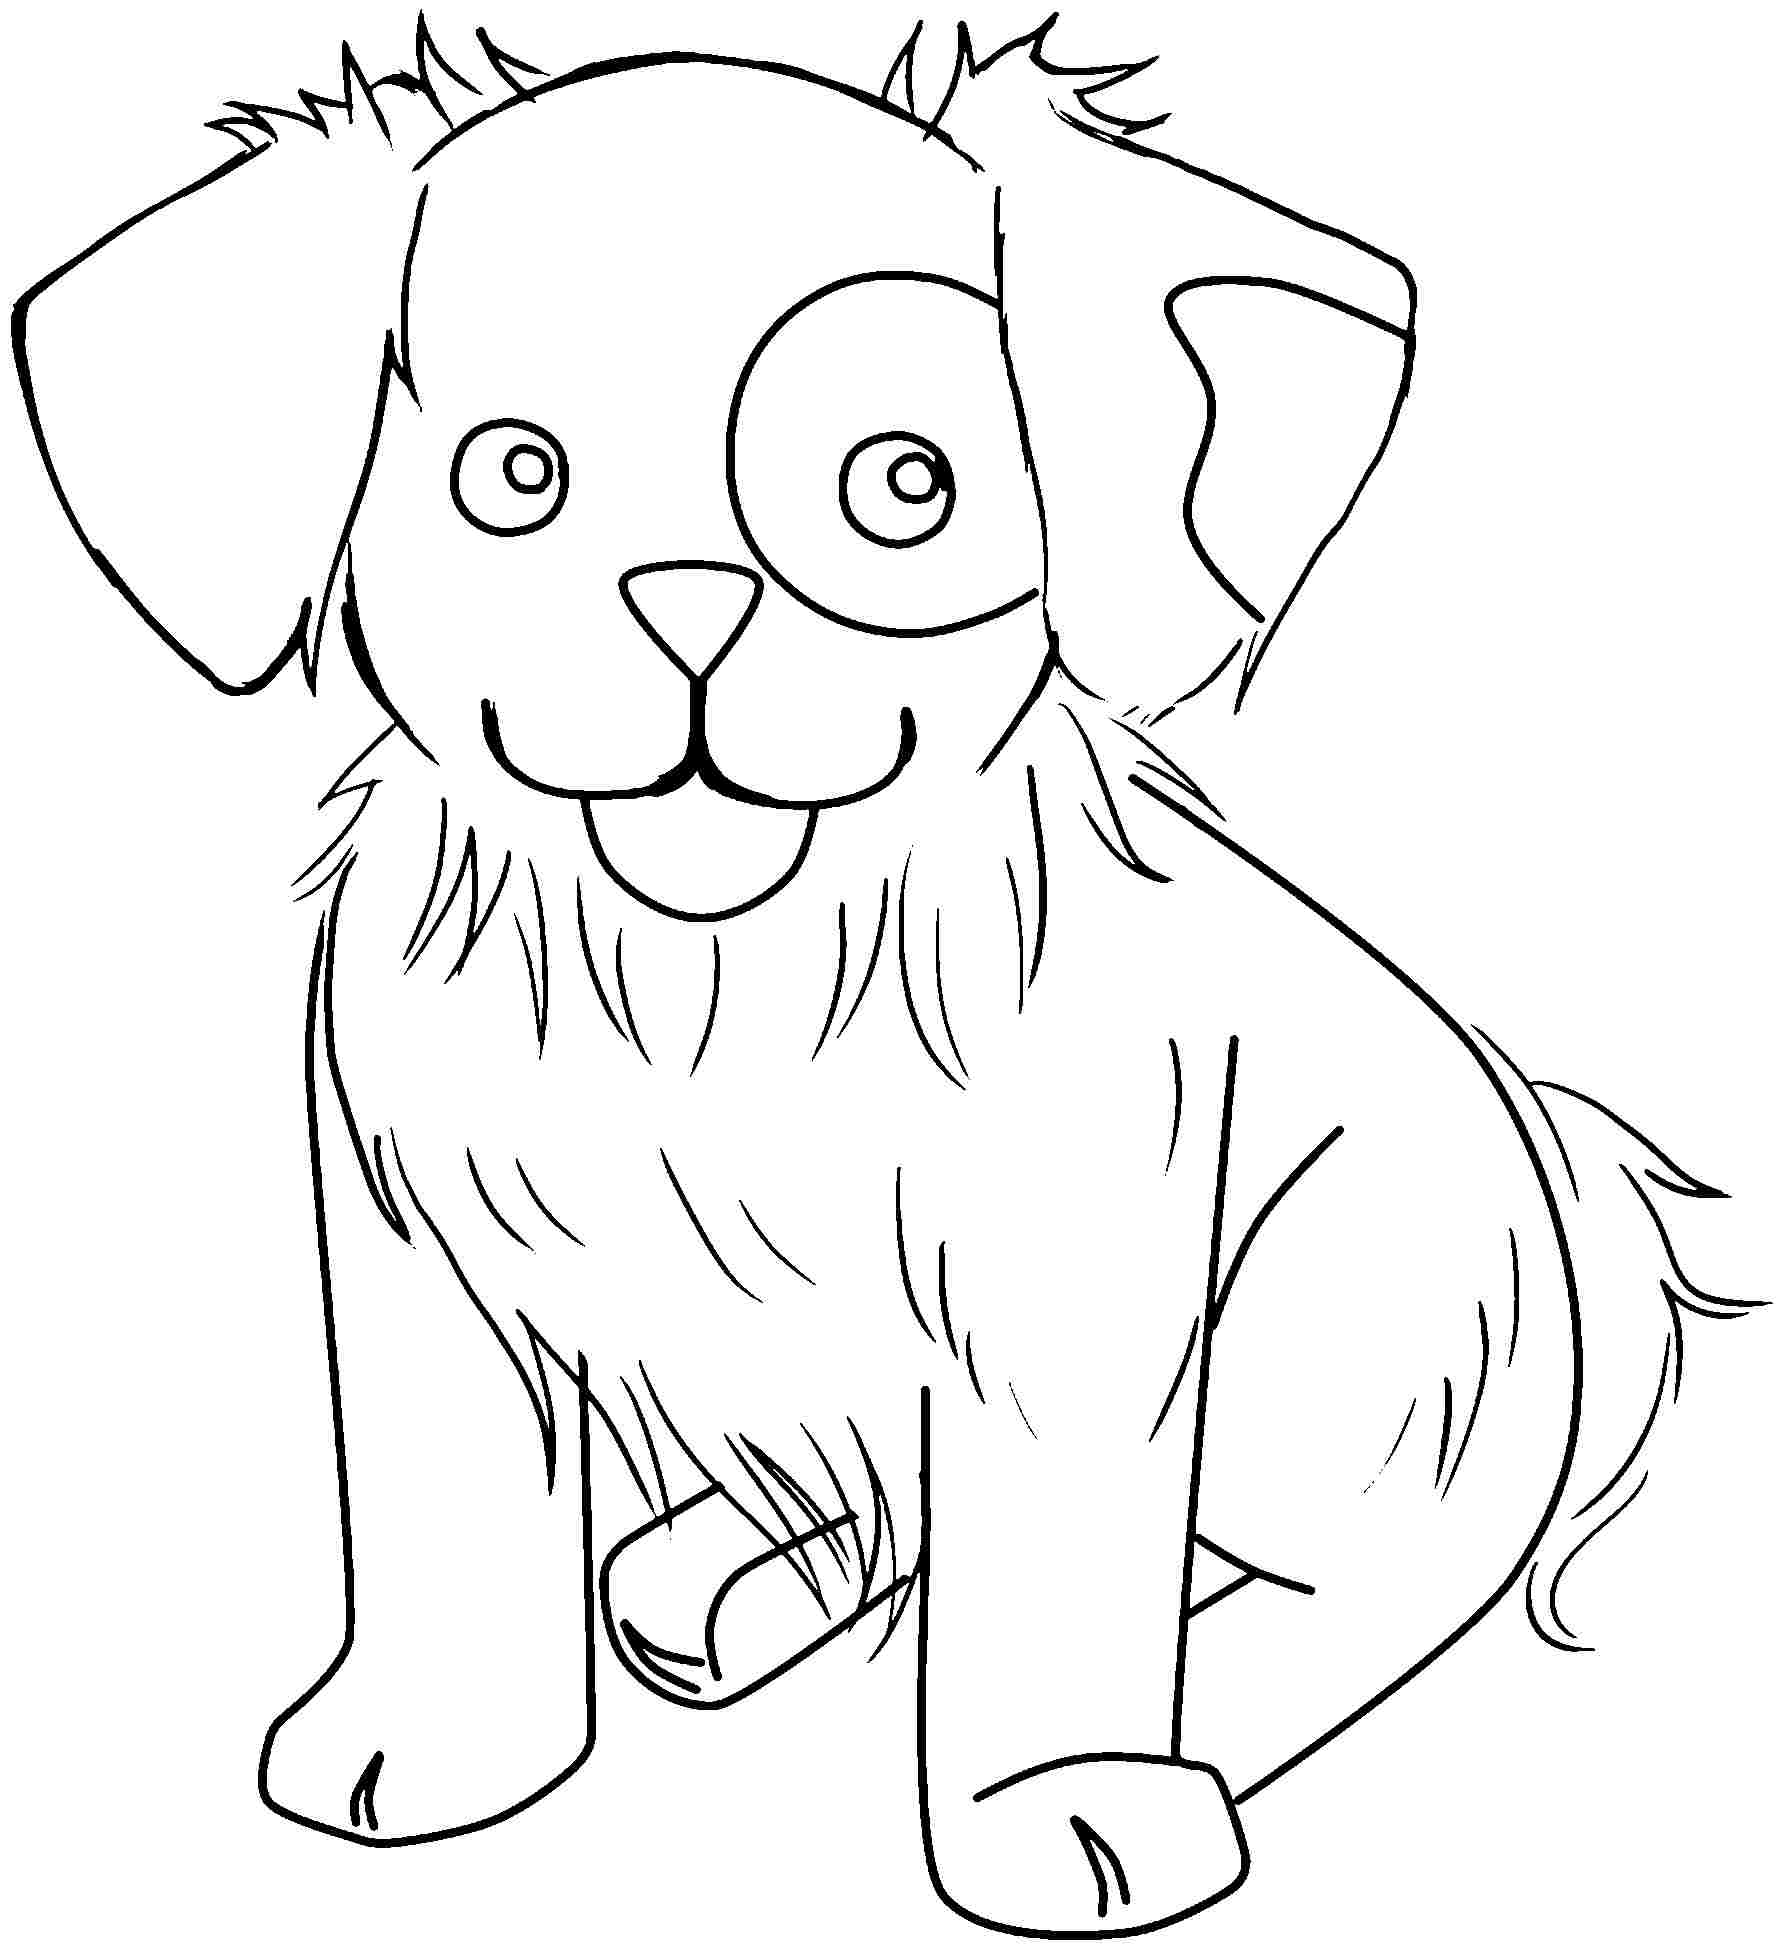 free printable animal colouring pages 30 free printable geometric animal coloring pages the animal pages free printable colouring